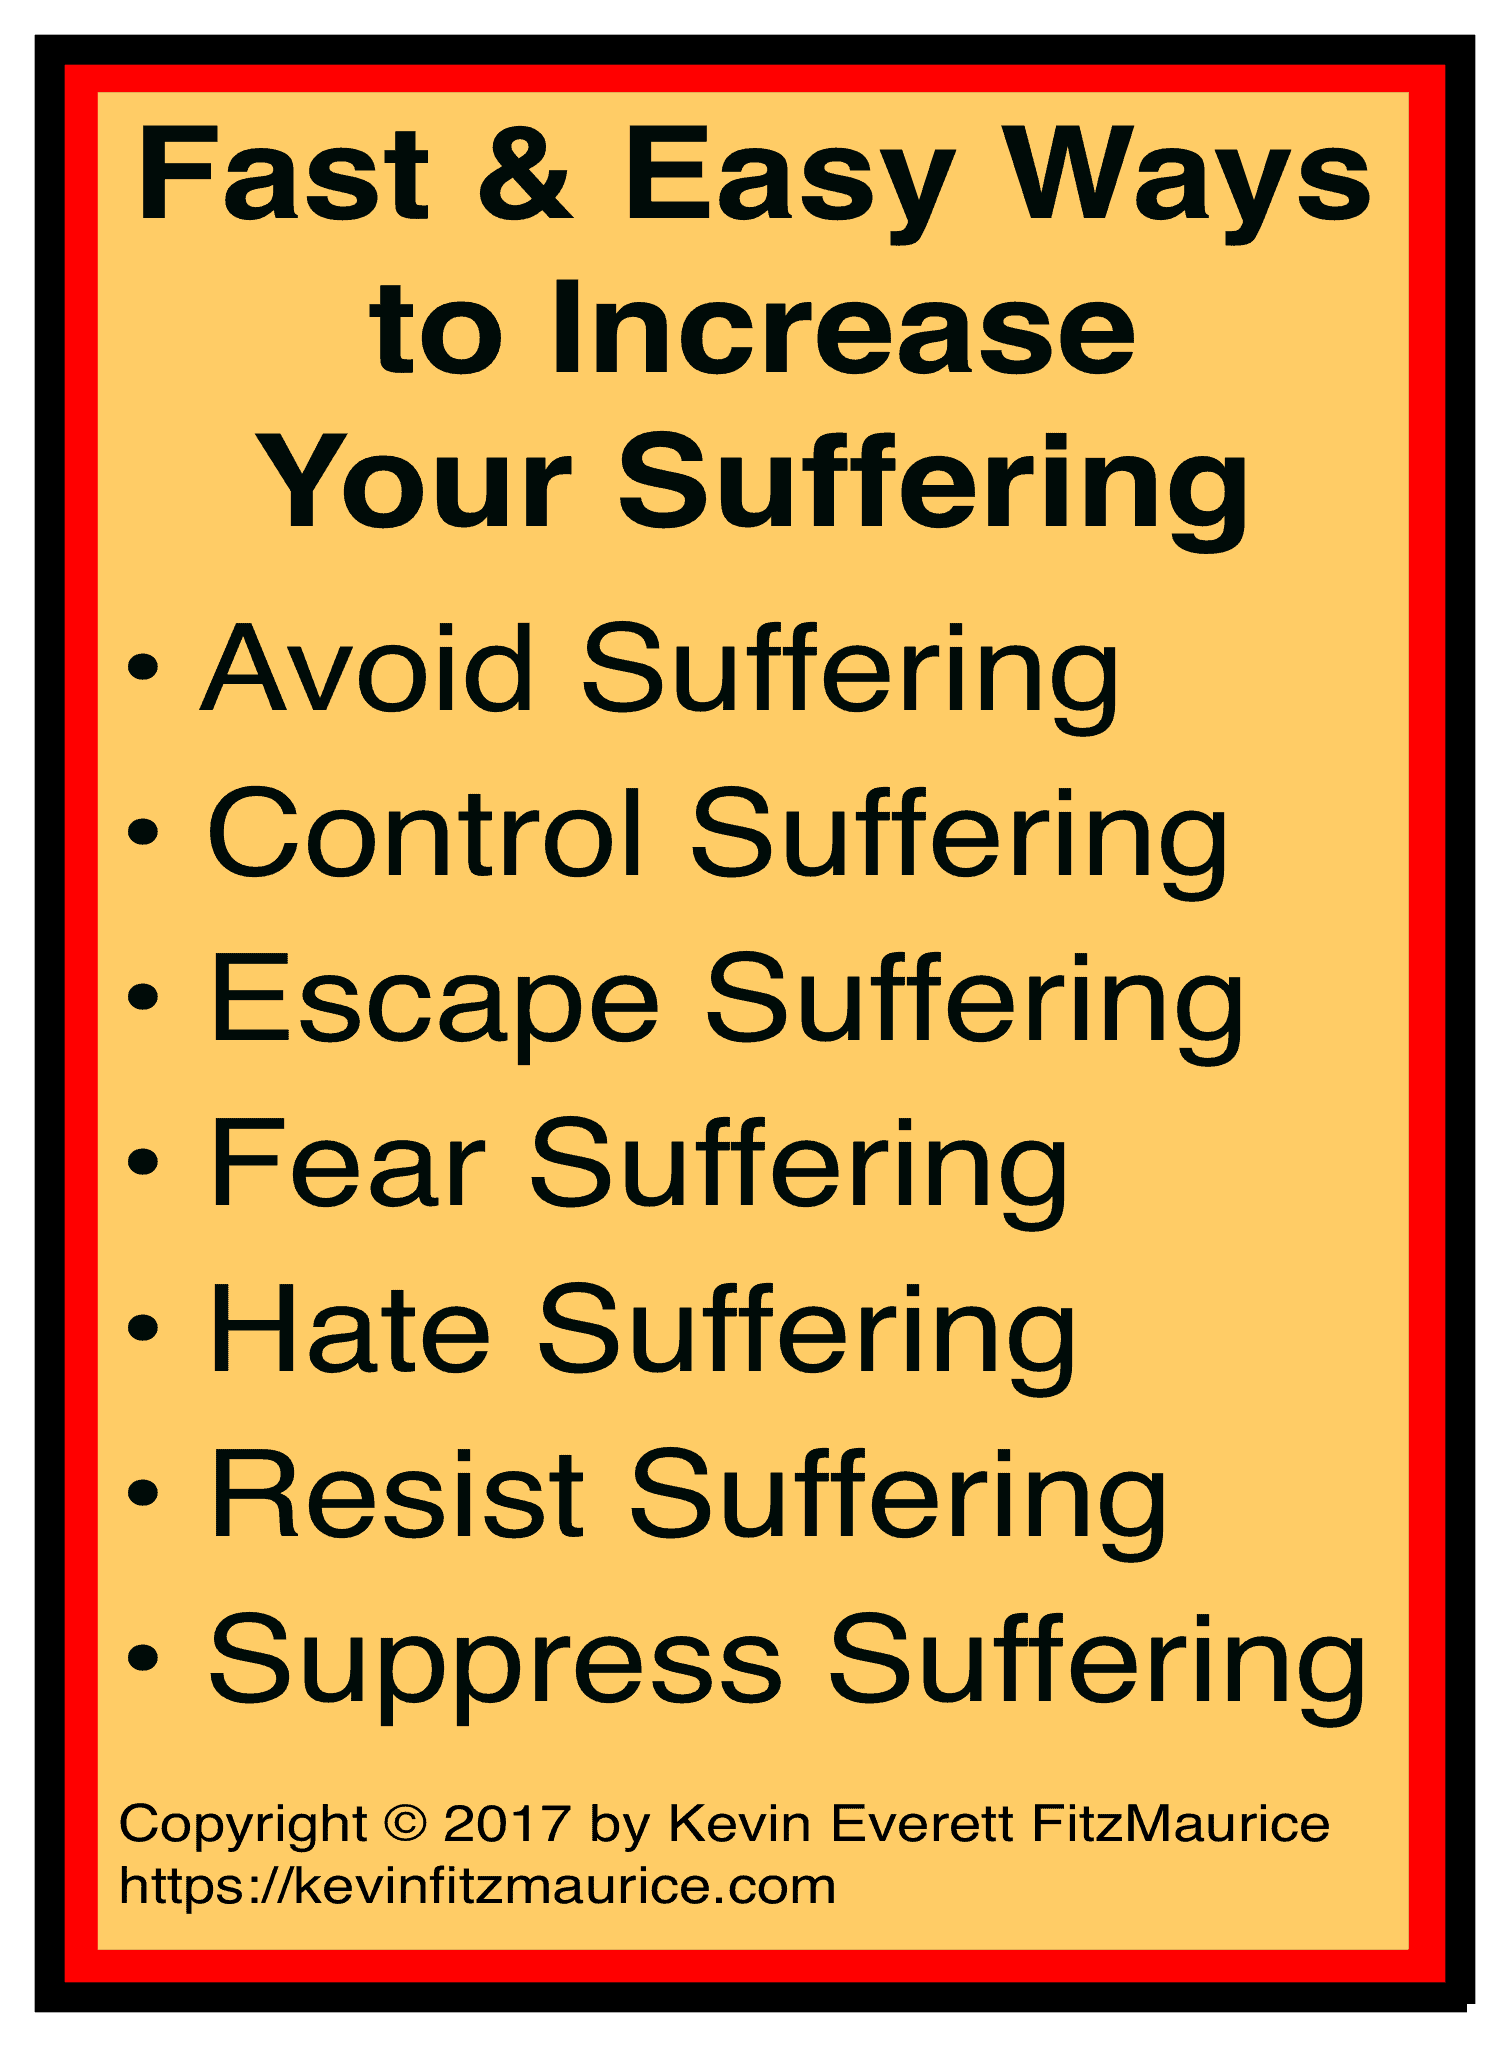 How to increase your suffering